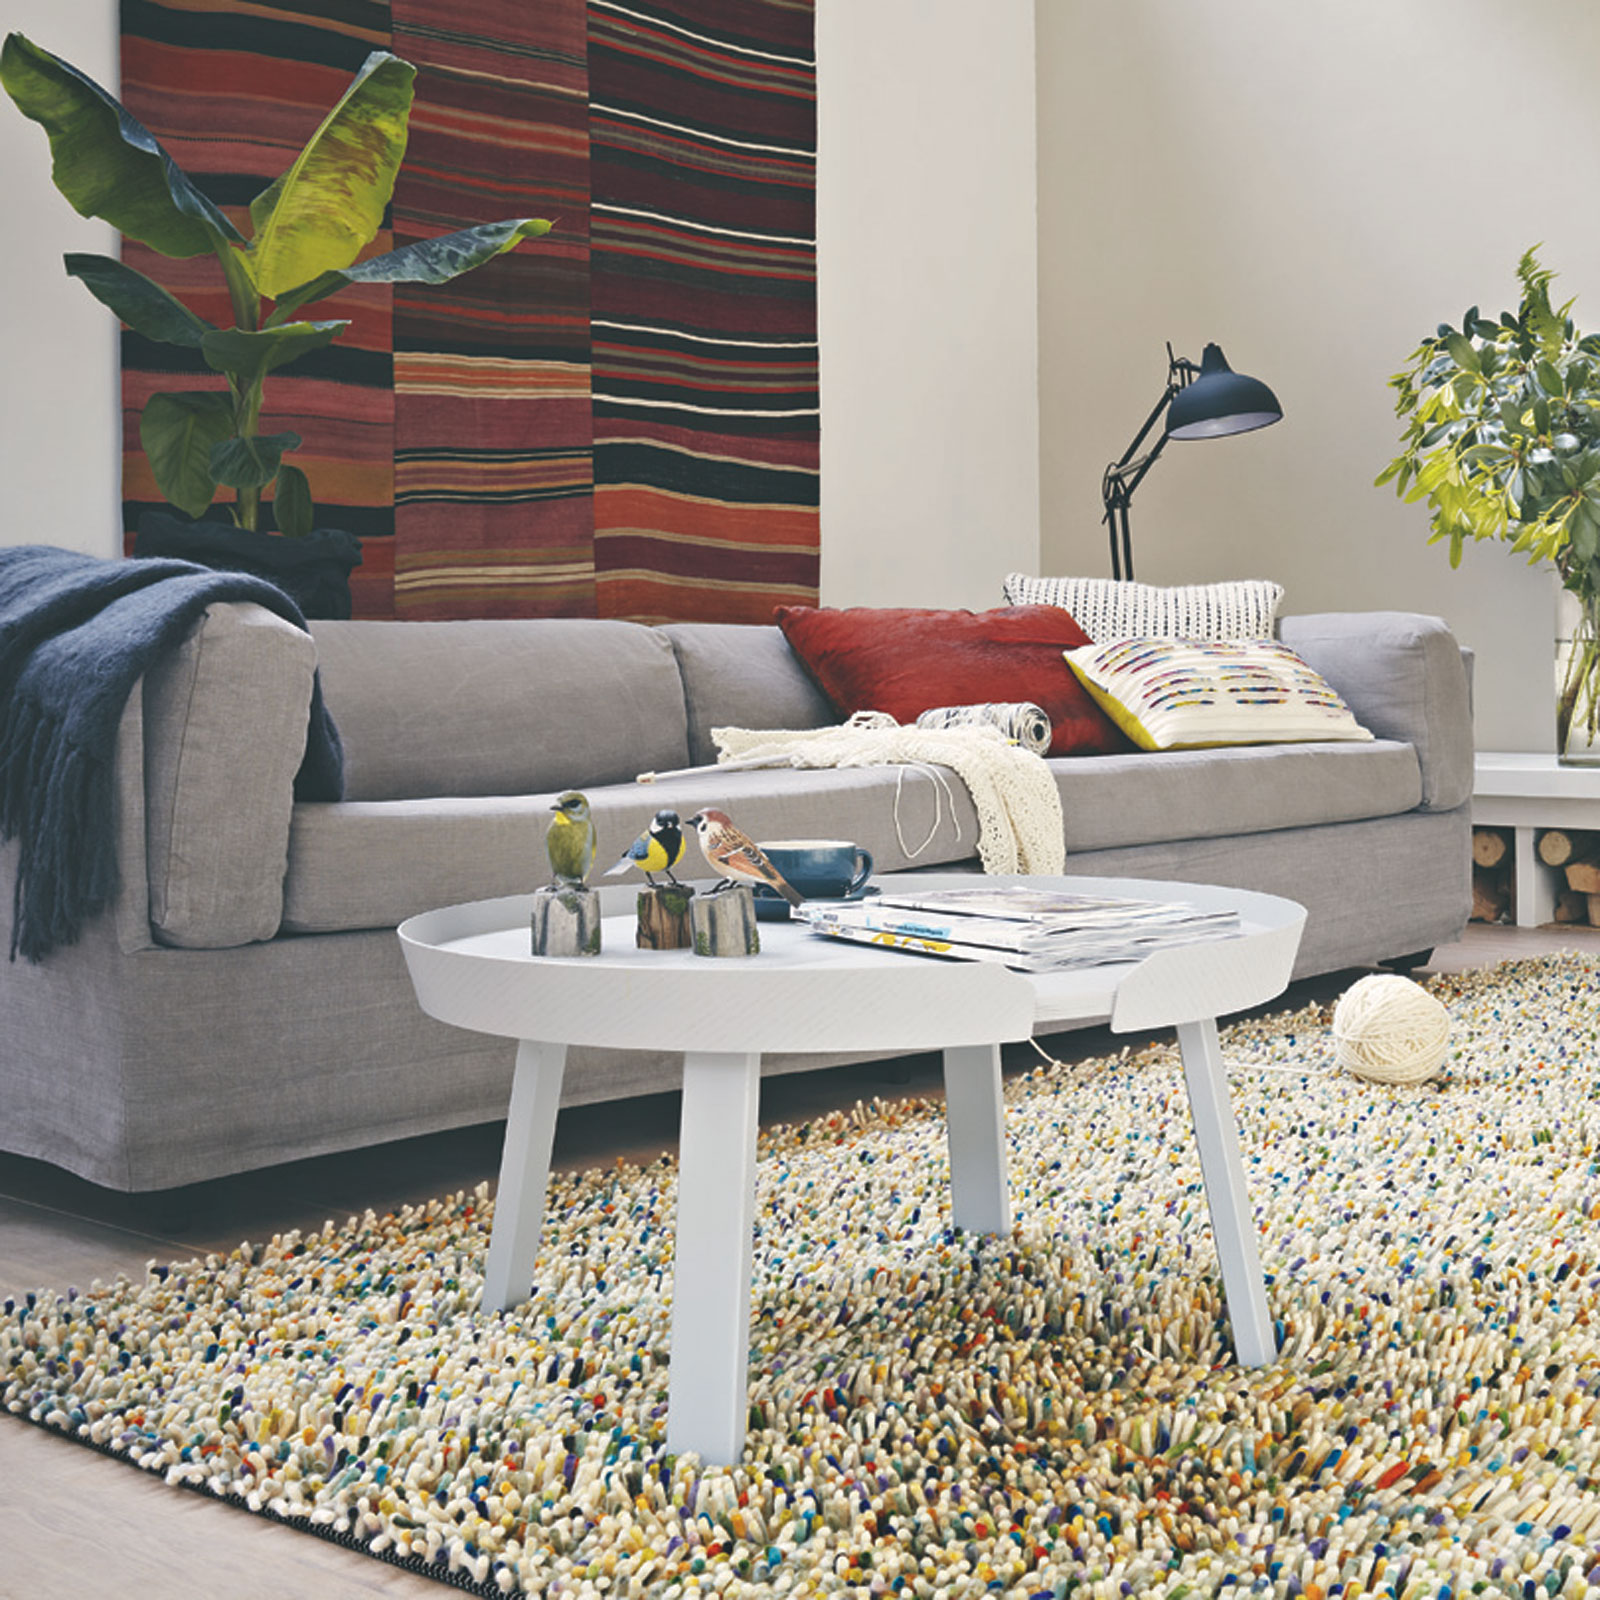 Rocks Mix Rugs 70411 Multi by Brink and Campman